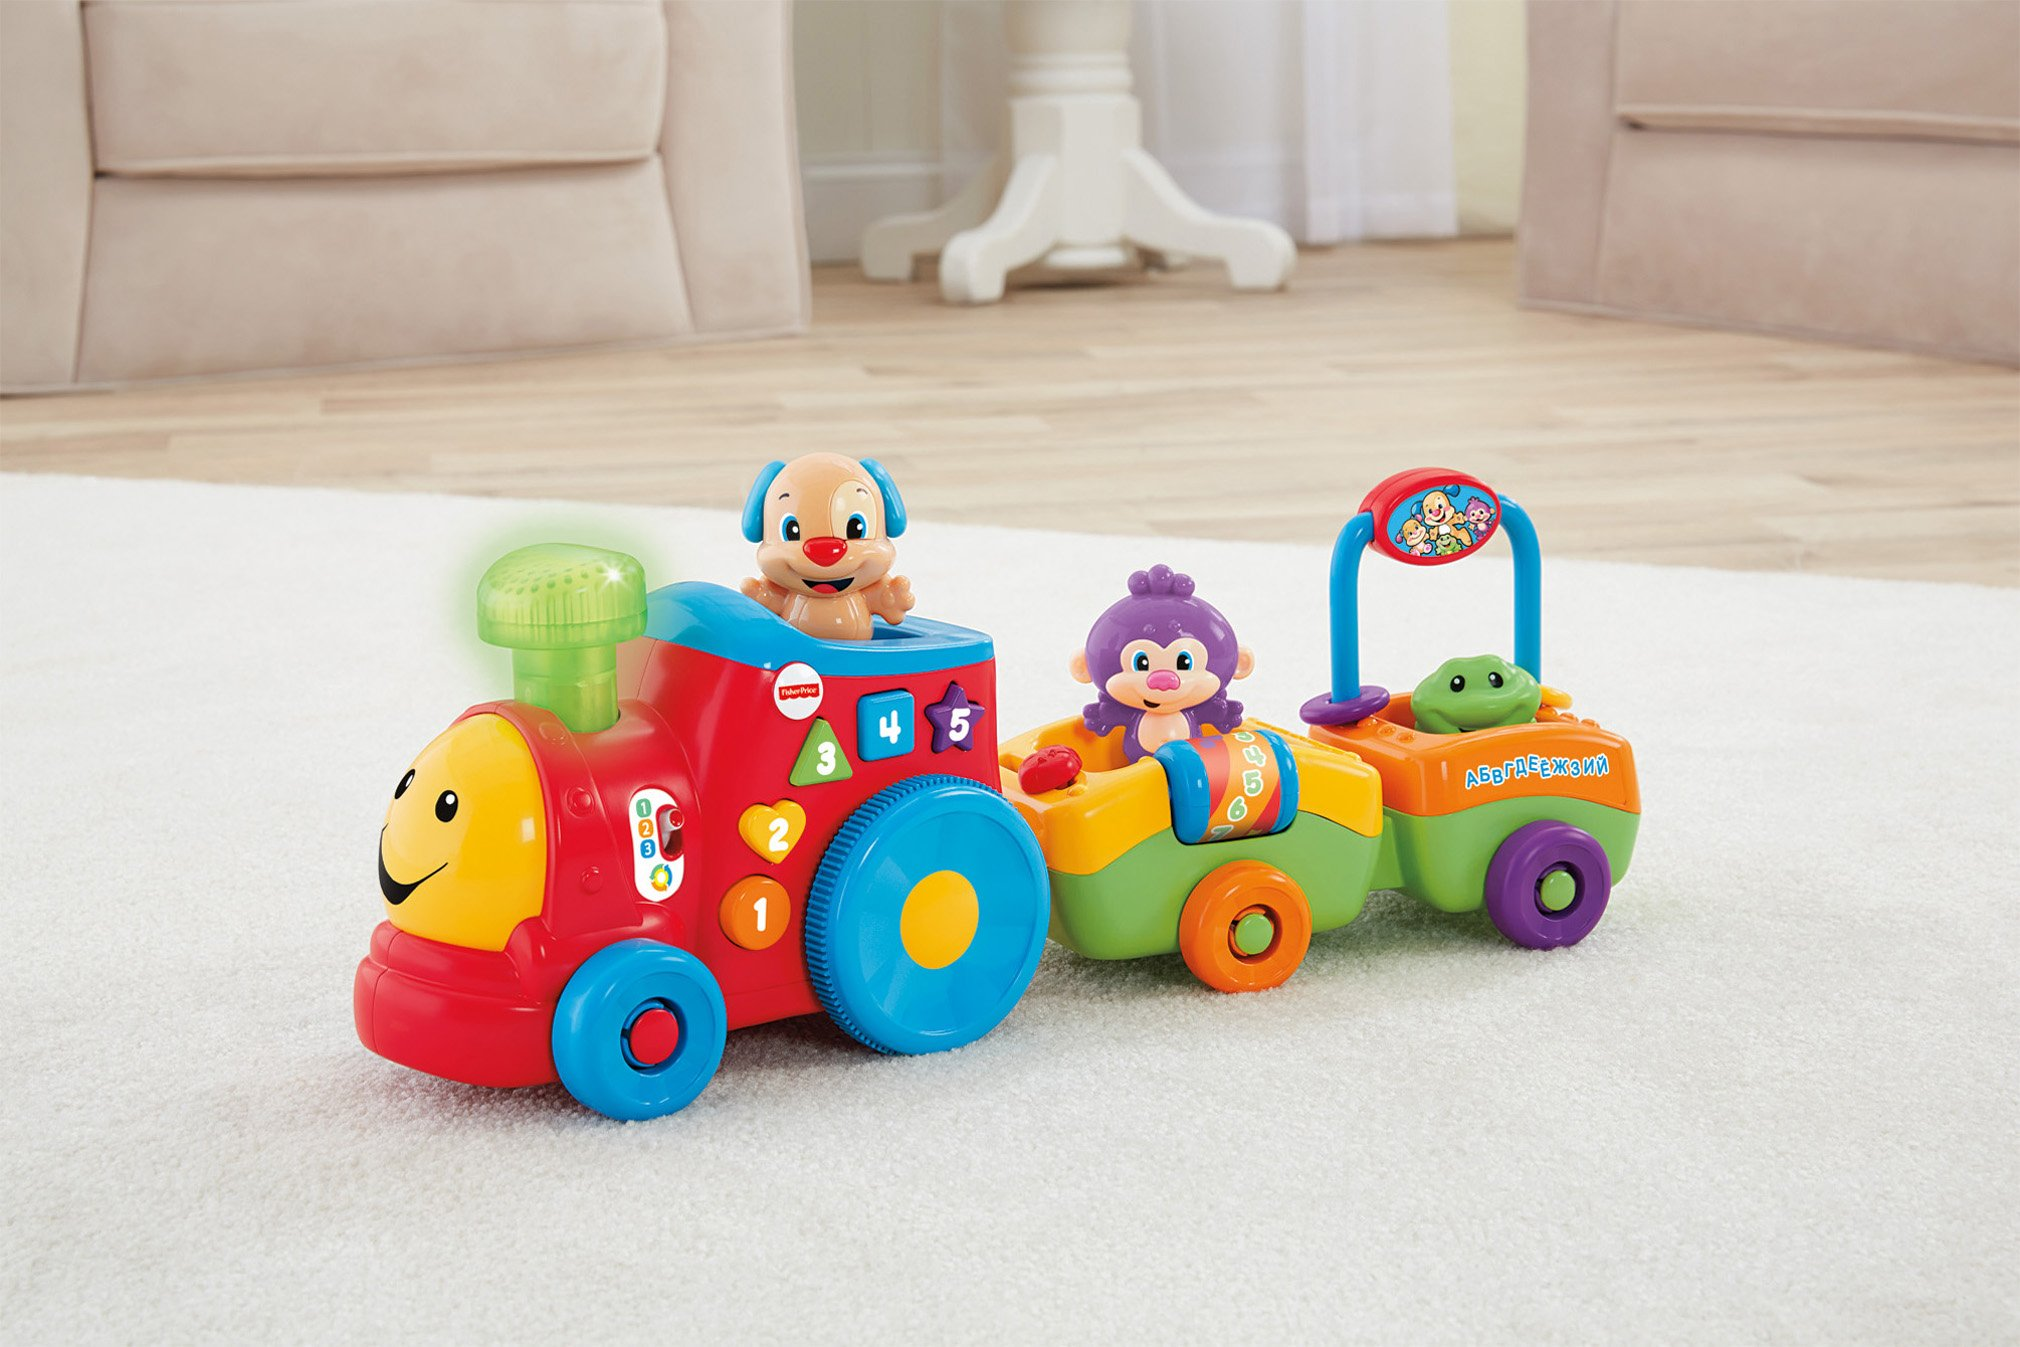 Fisher-Price Laugh & Learn Smart Stages Puppy's Smart Train by Fisher-Price (Image #18)